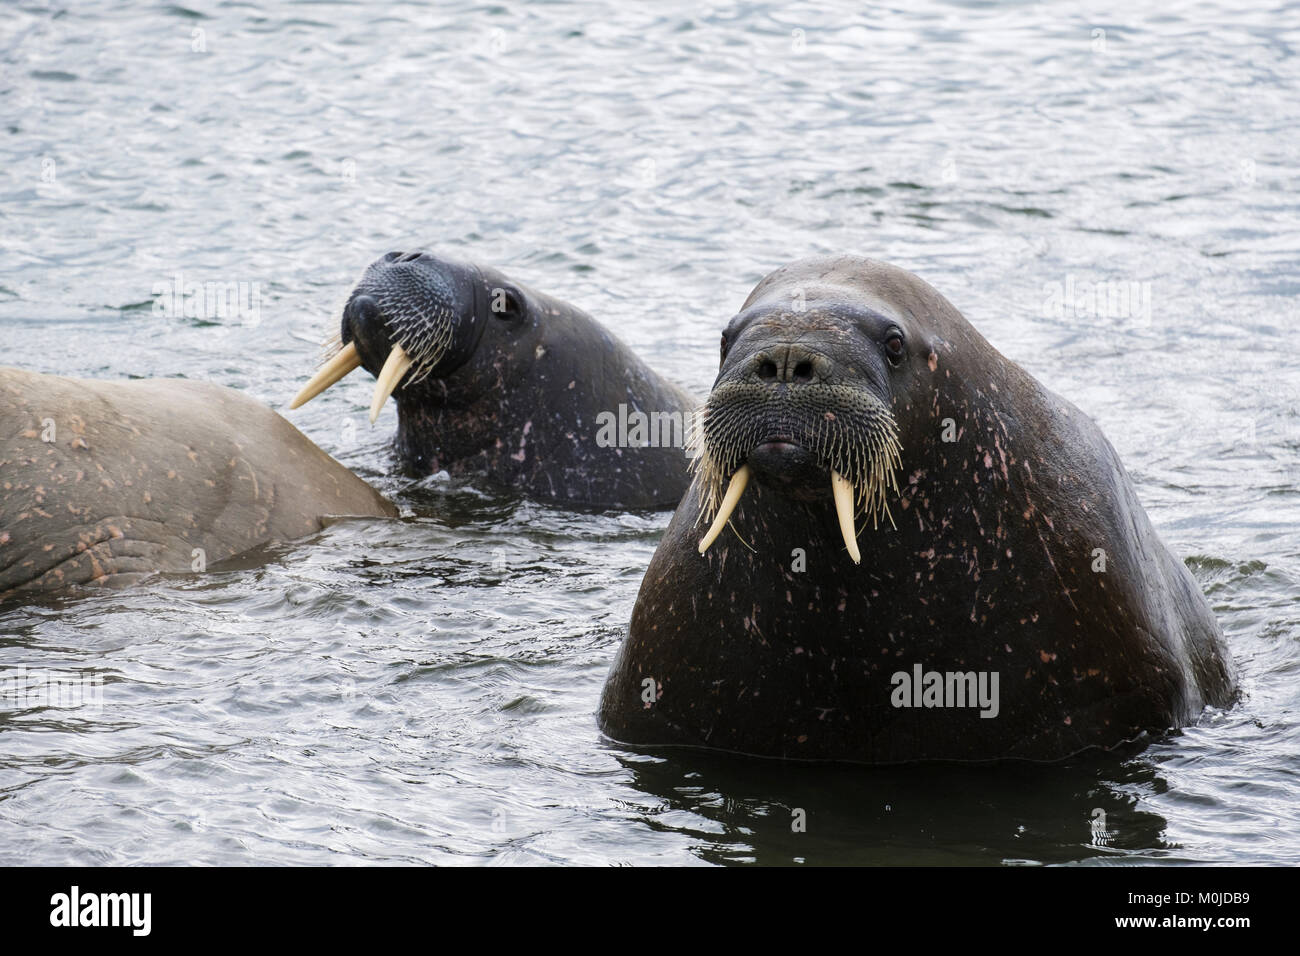 Adult Walruses (Odobenus rosmarus) swimming offshore in sea on Arctic coast in summer 2017. Spitsbergen island, - Stock Image